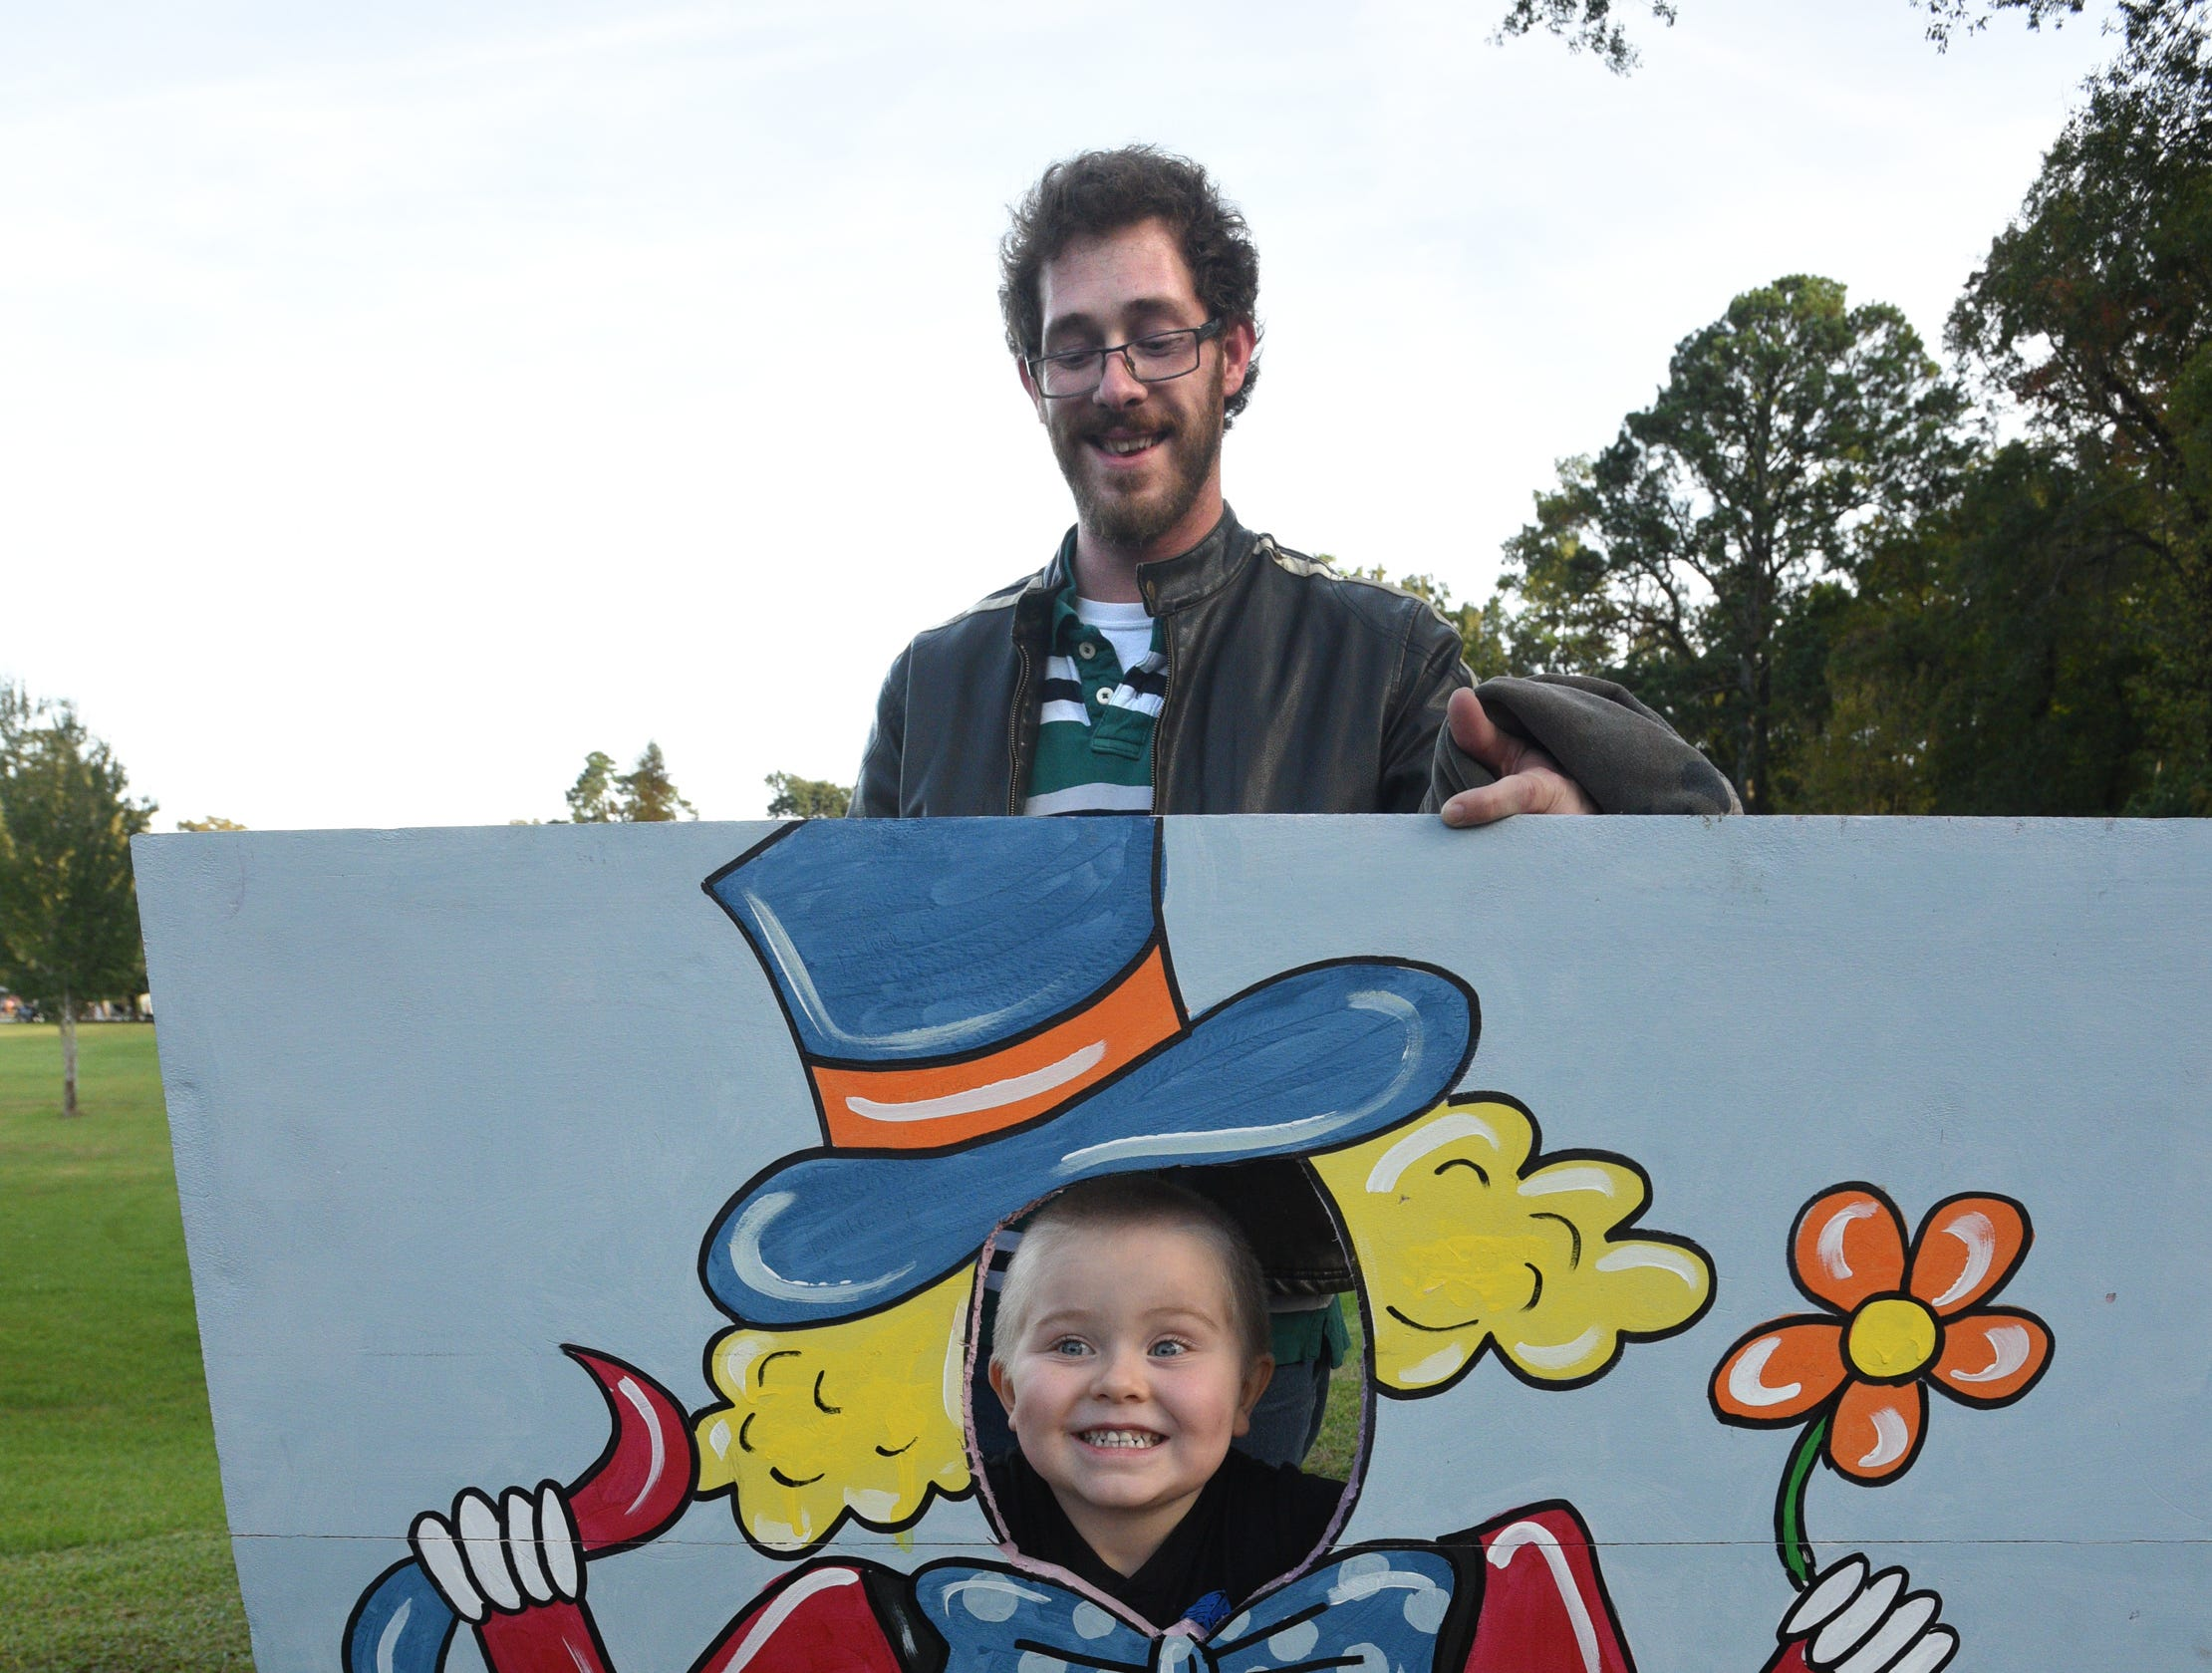 Sterling and Charles Axtens at the 26th Annual Punpkin Shine on Line held Tuesday at Betty Virginia Park.